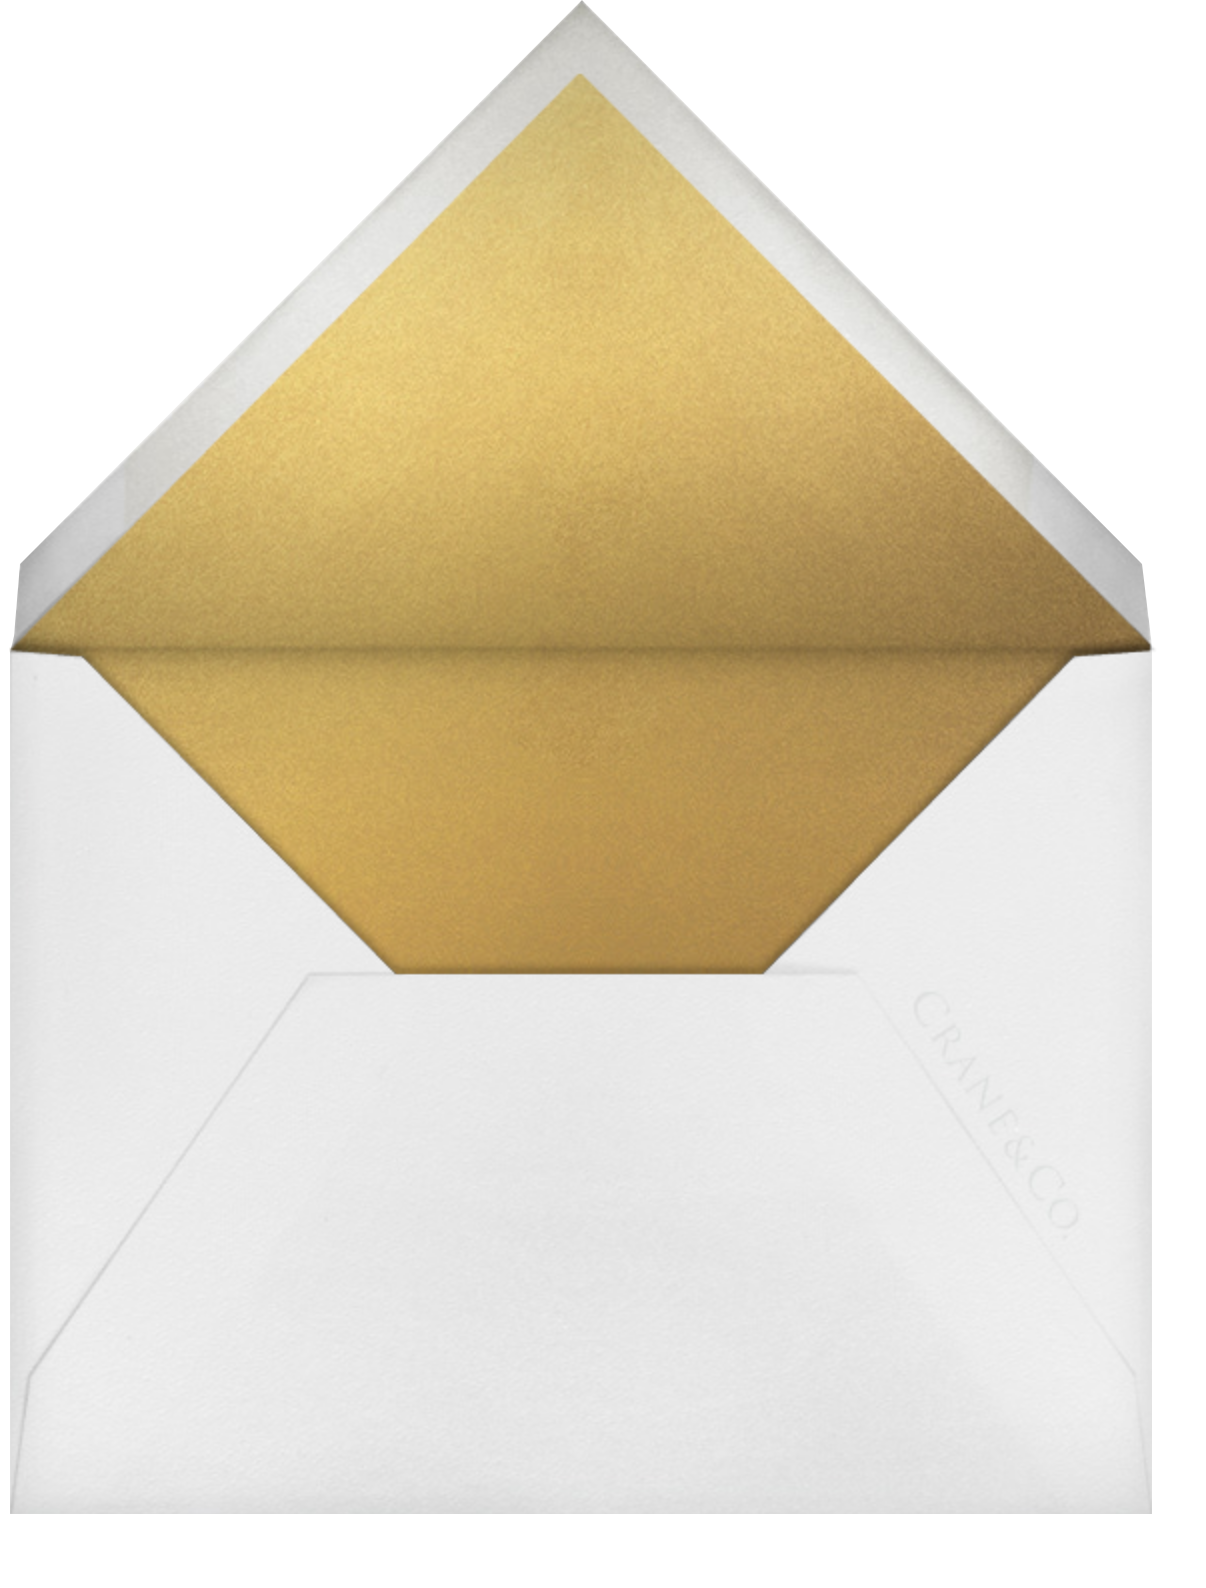 Erte - Medium Gold - Crane & Co. - All - envelope back